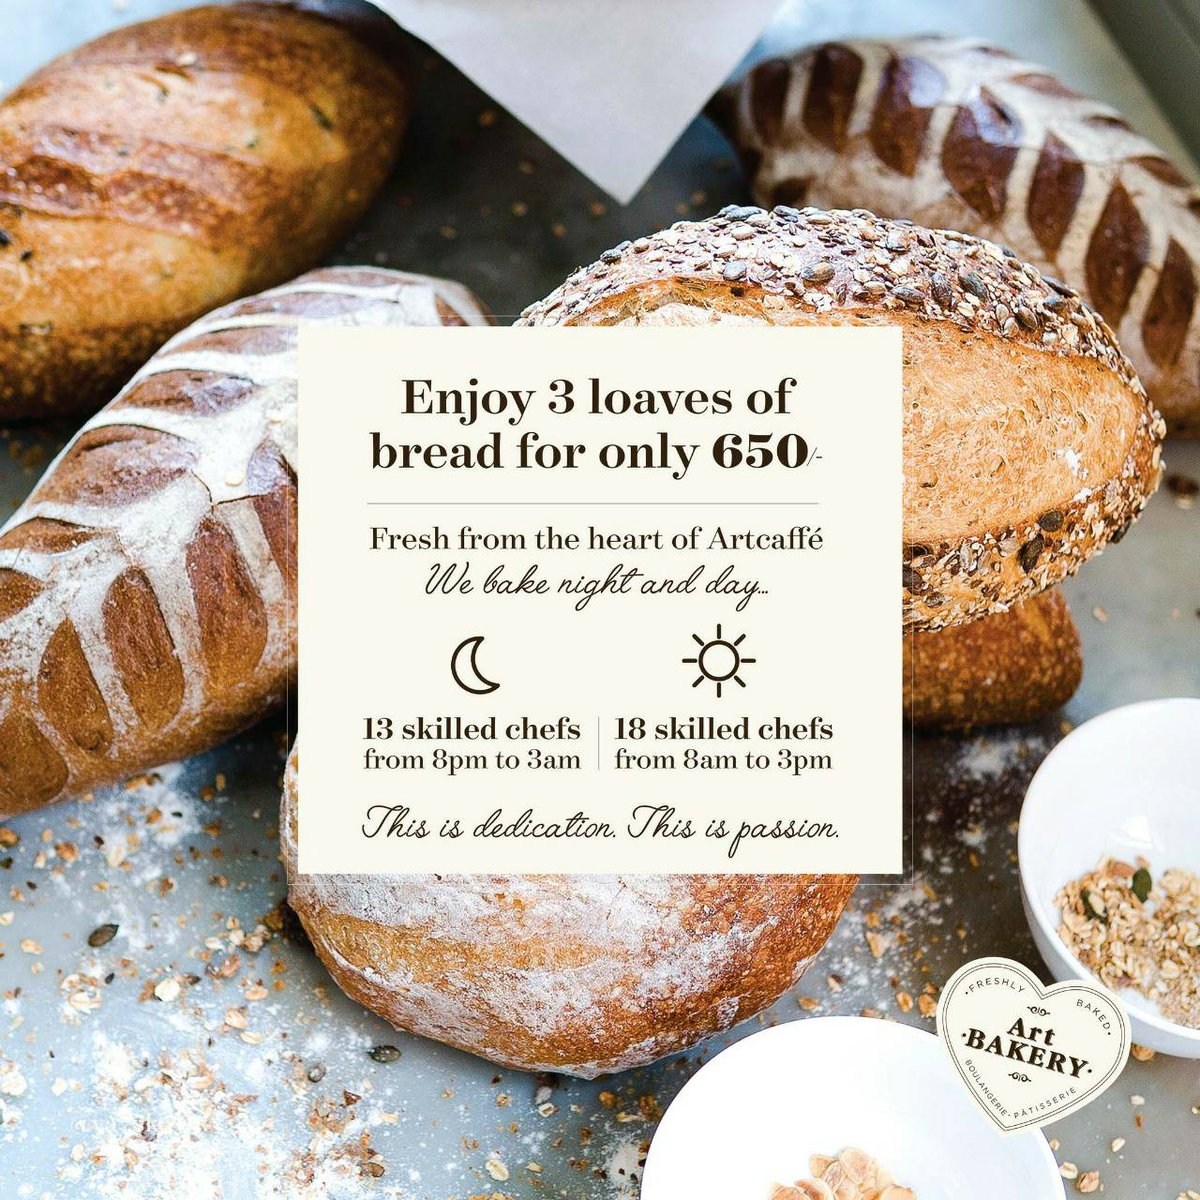 Bread made with love. Enjoy 3 loaves for only 650/- from @artcaffekenya.  #WestgateExperience https://t.co/Afo1dbGfAx